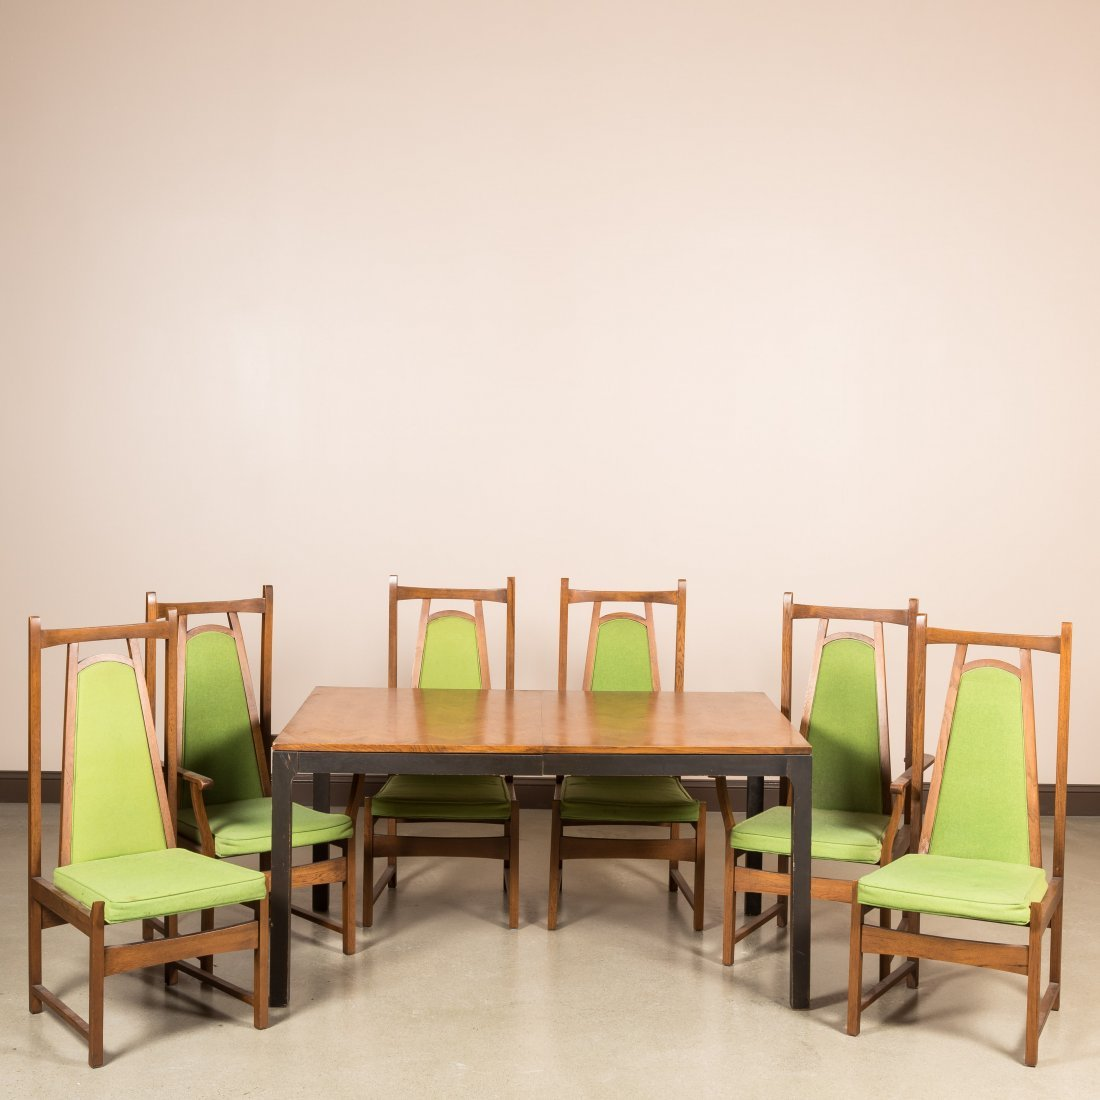 Six Lane Altavista Chairs and Dining Table